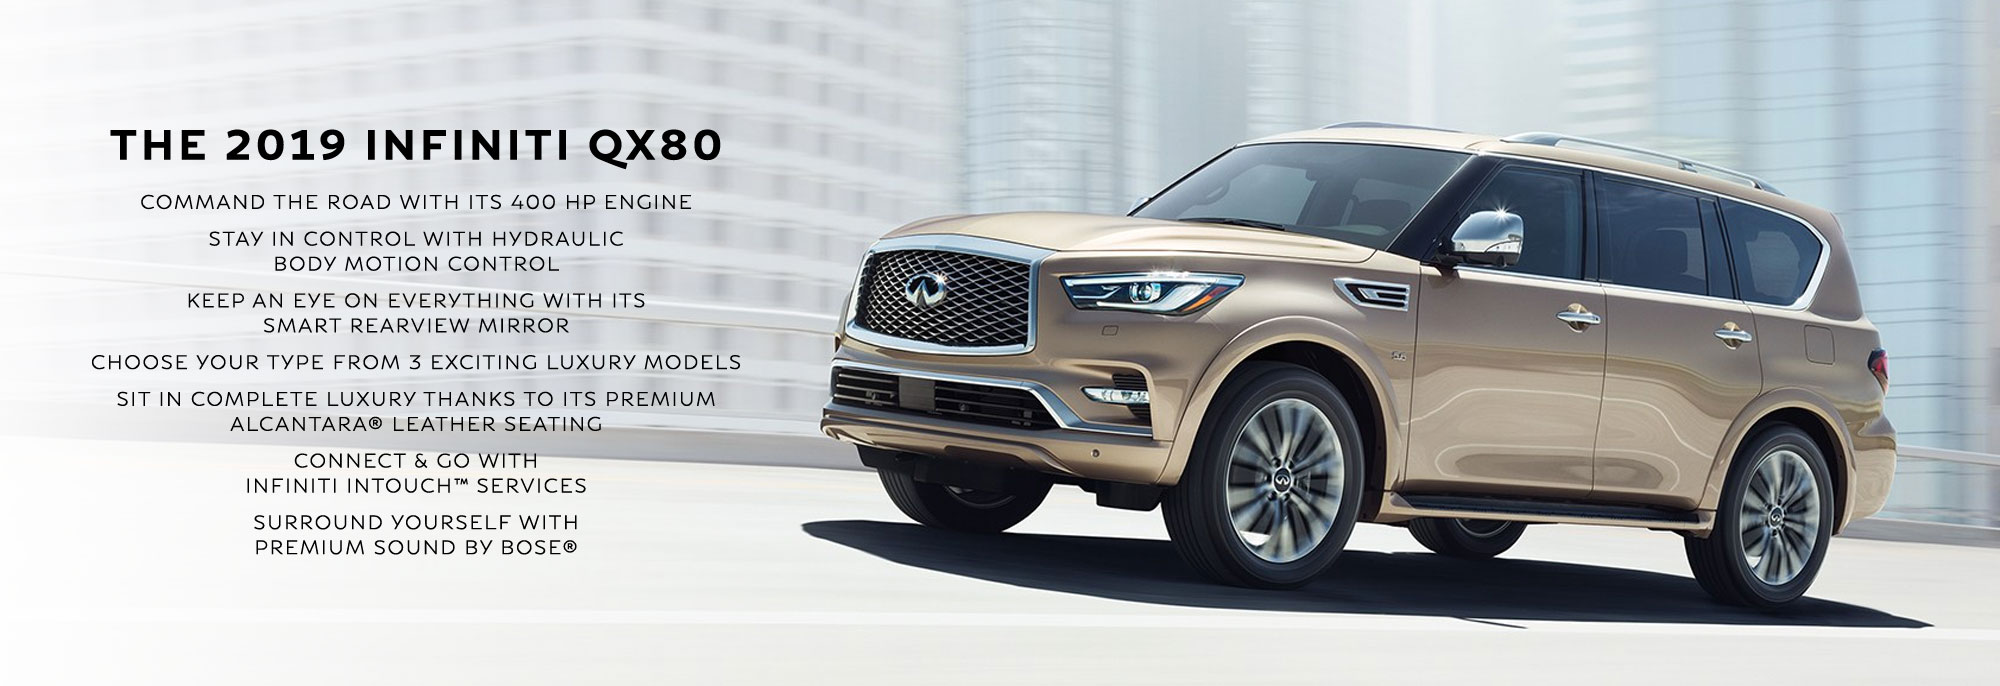 New 2019 INFINITI QX80 Offer